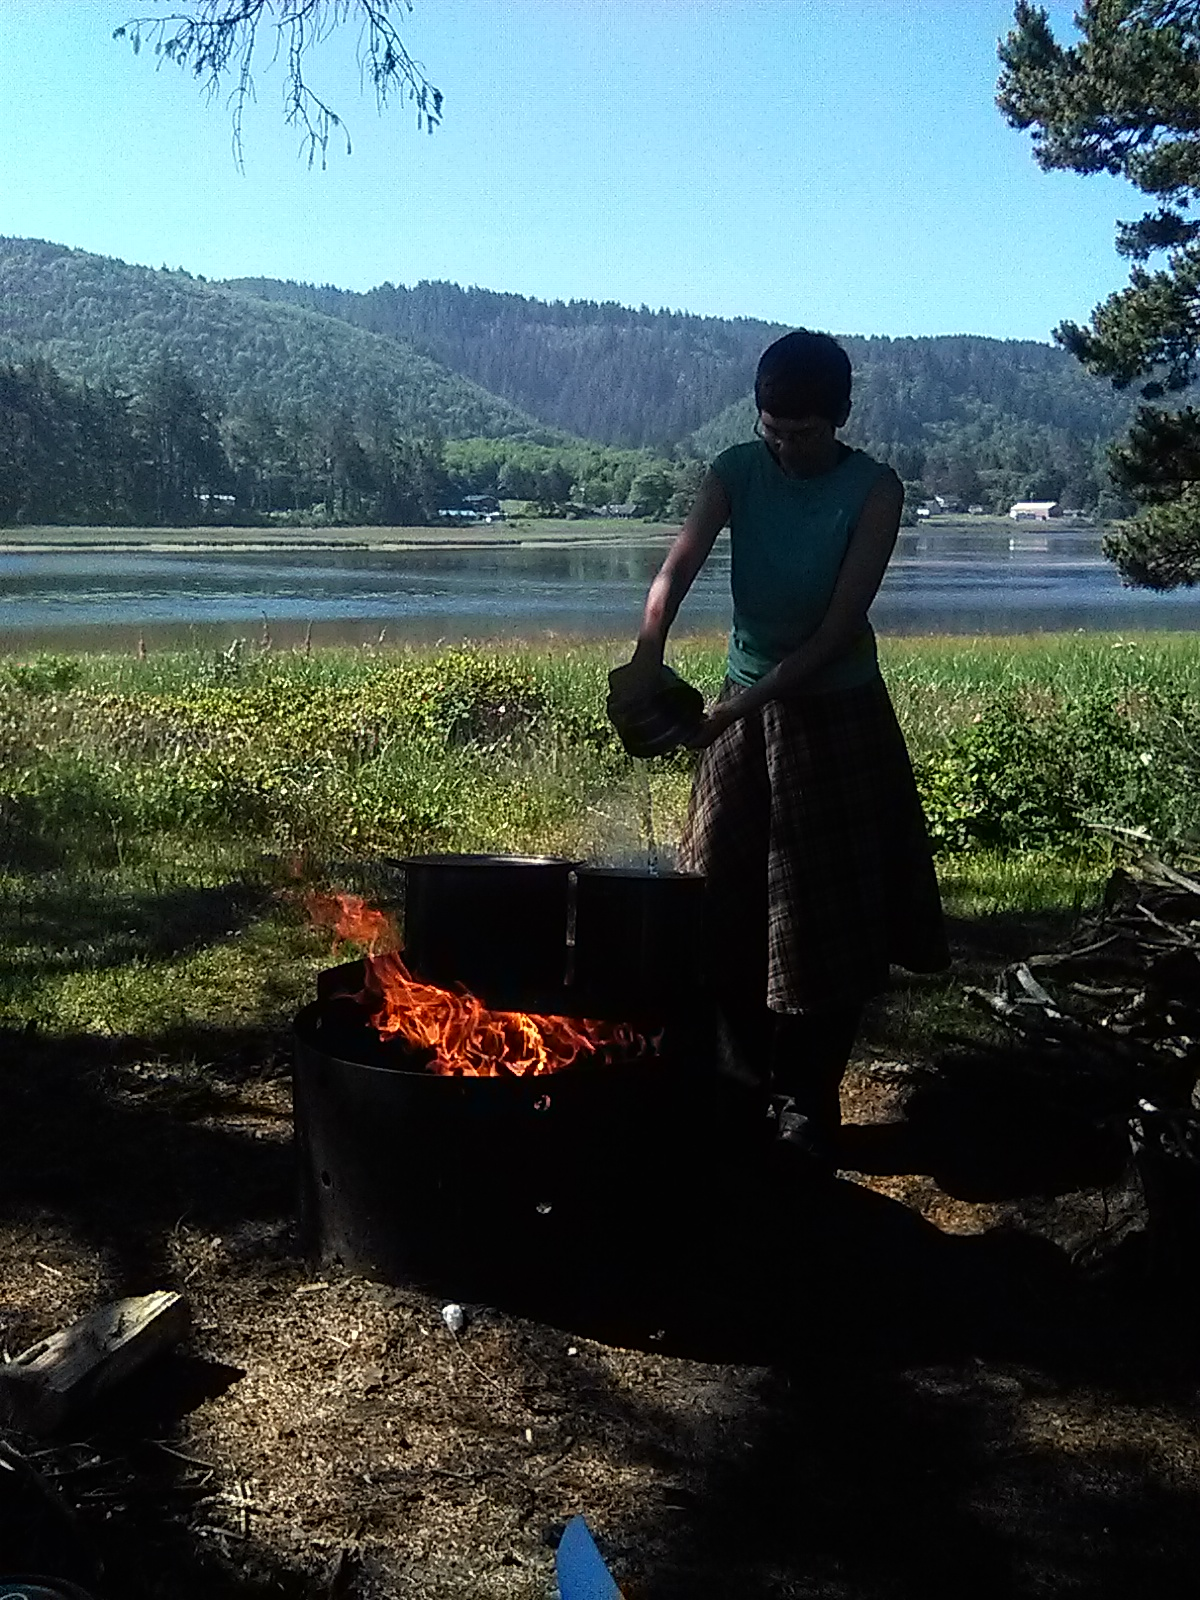 Dumping ocean water into a pot over the fire